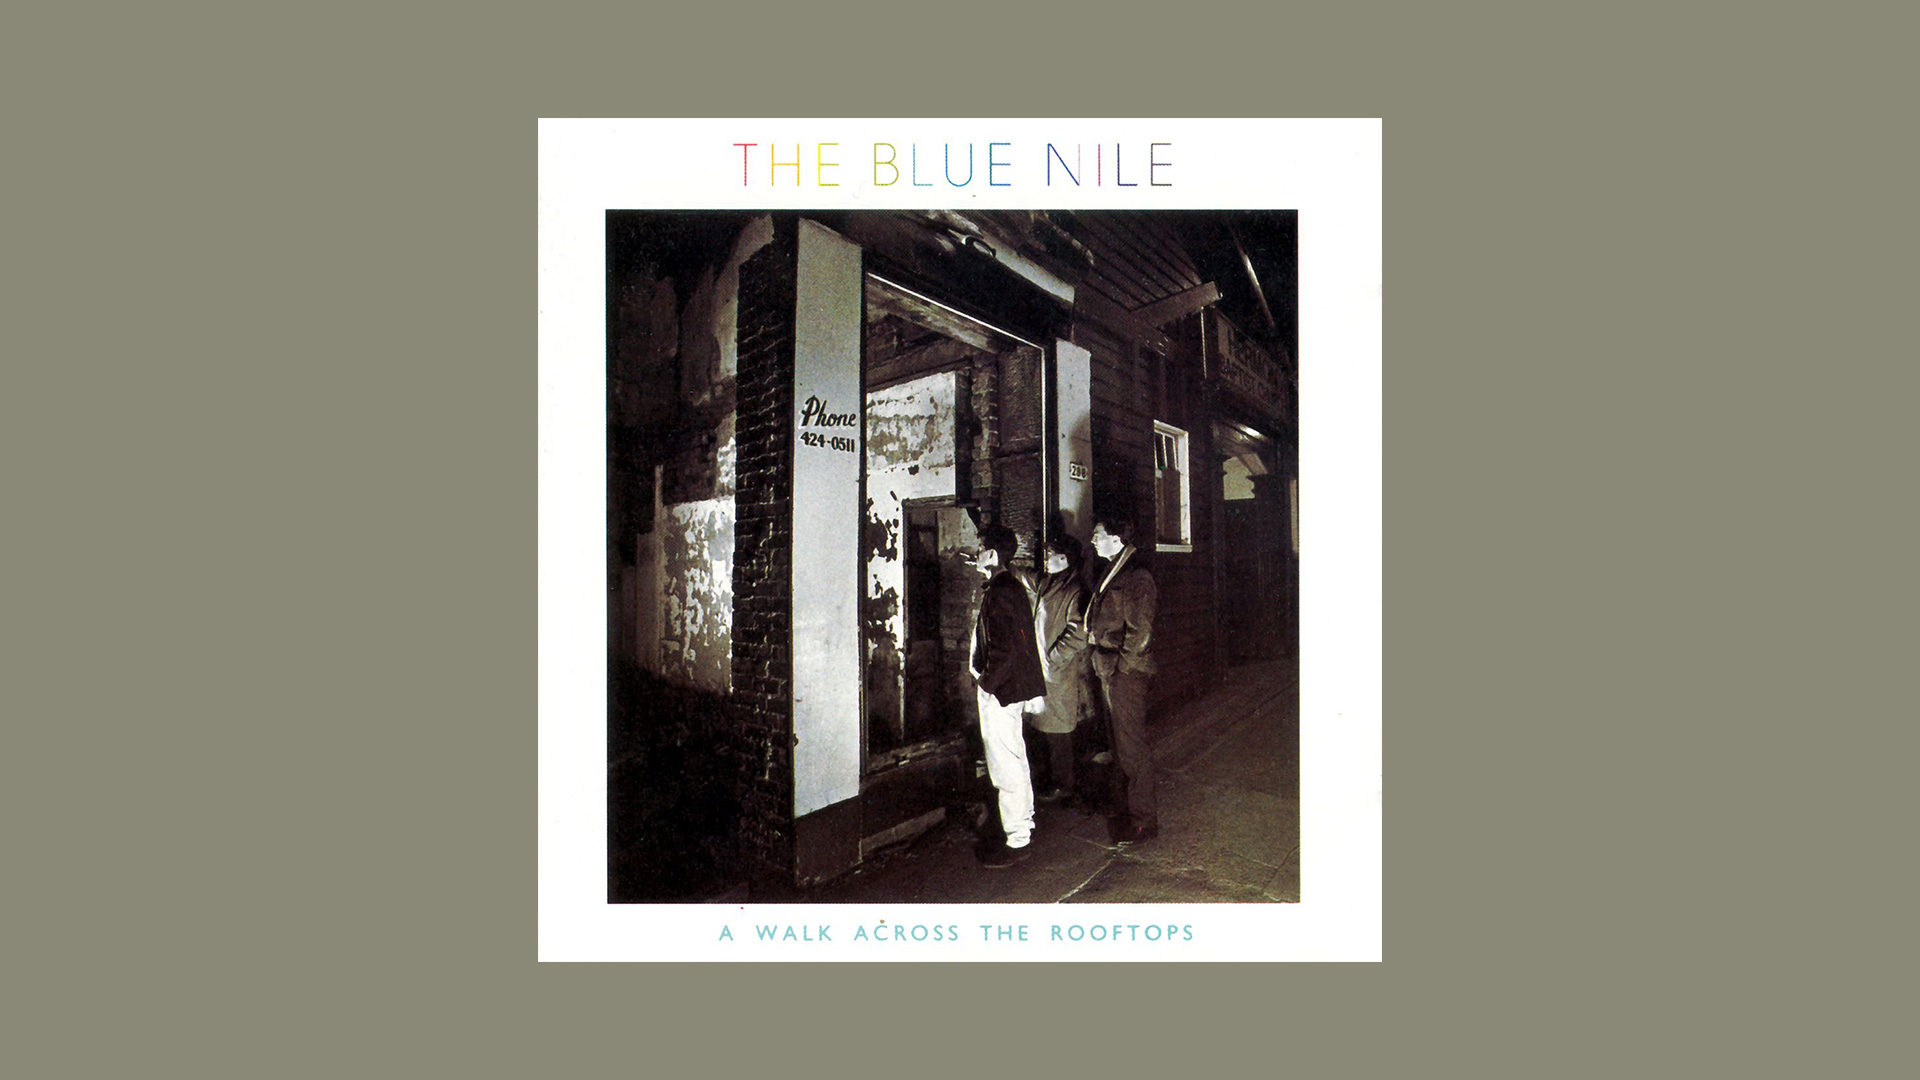 A Walk Across the Rooftops - The Blue Nile